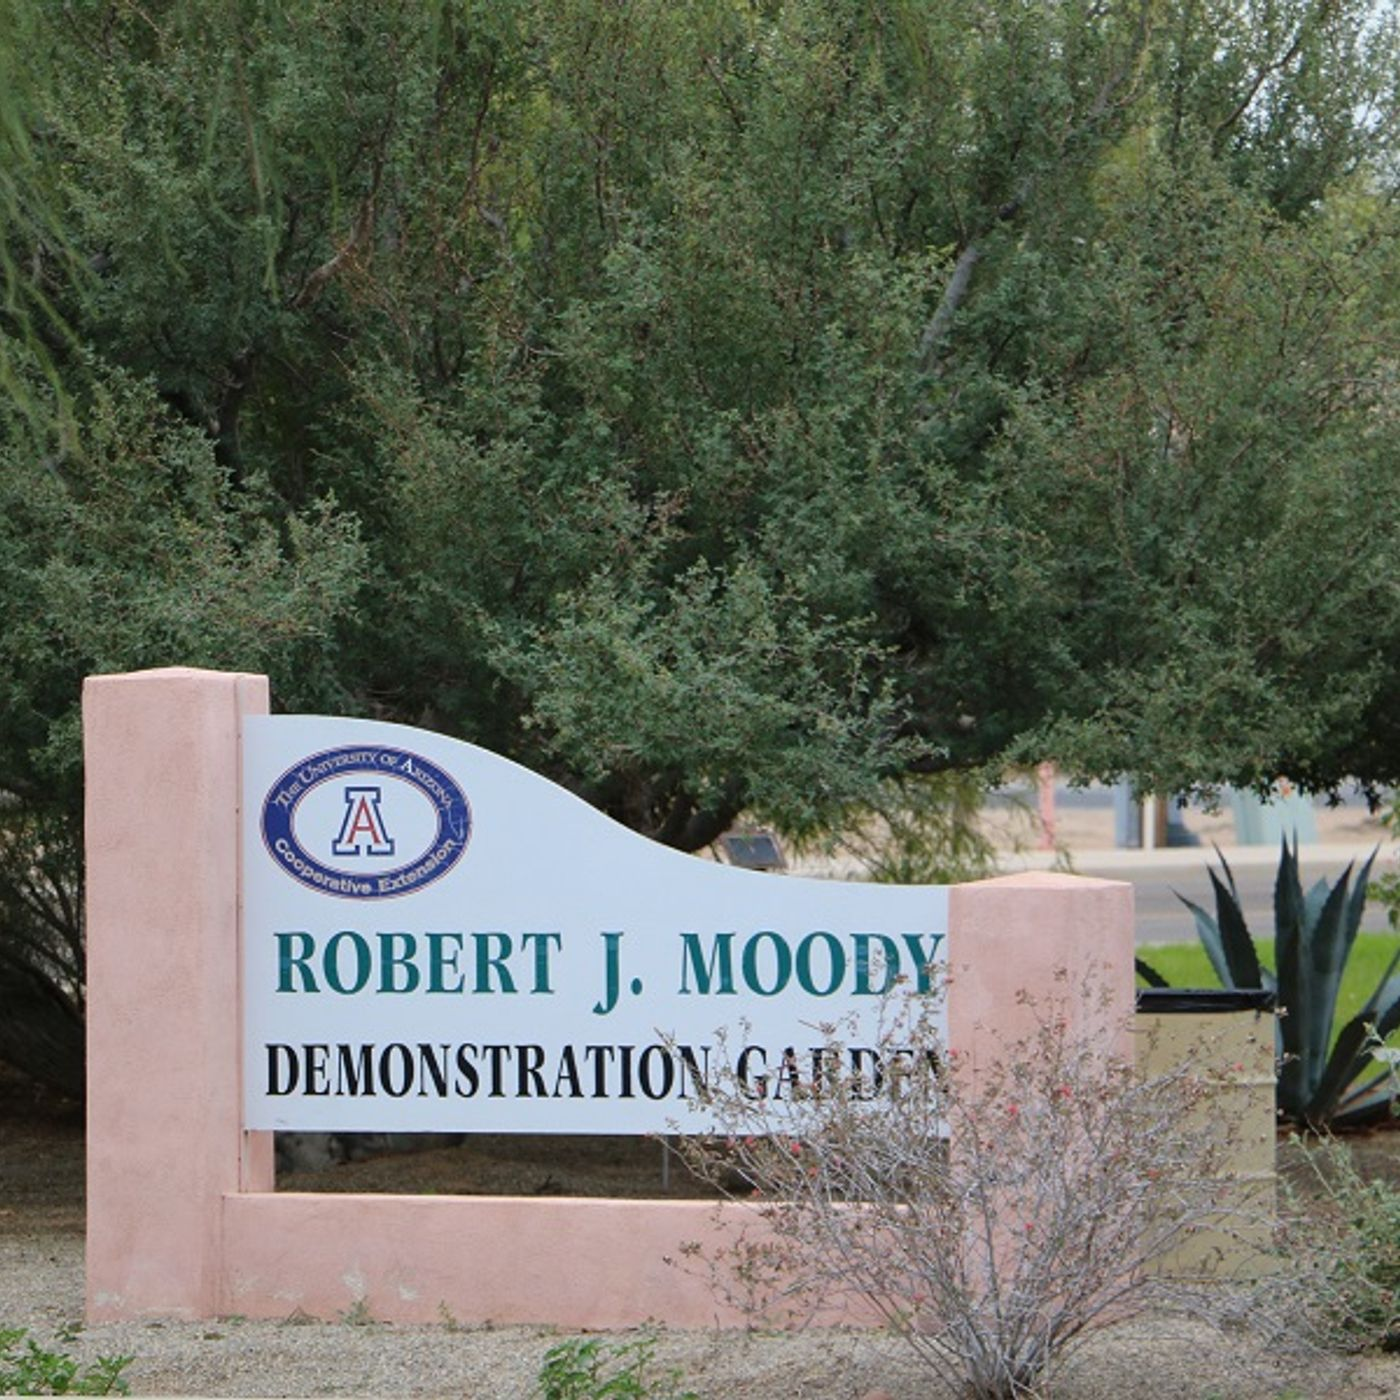 Robert J. Moody Demonstration Garden in Yuma, AZ - Marylou Milstead and Bill Moody on Big Blend Radio